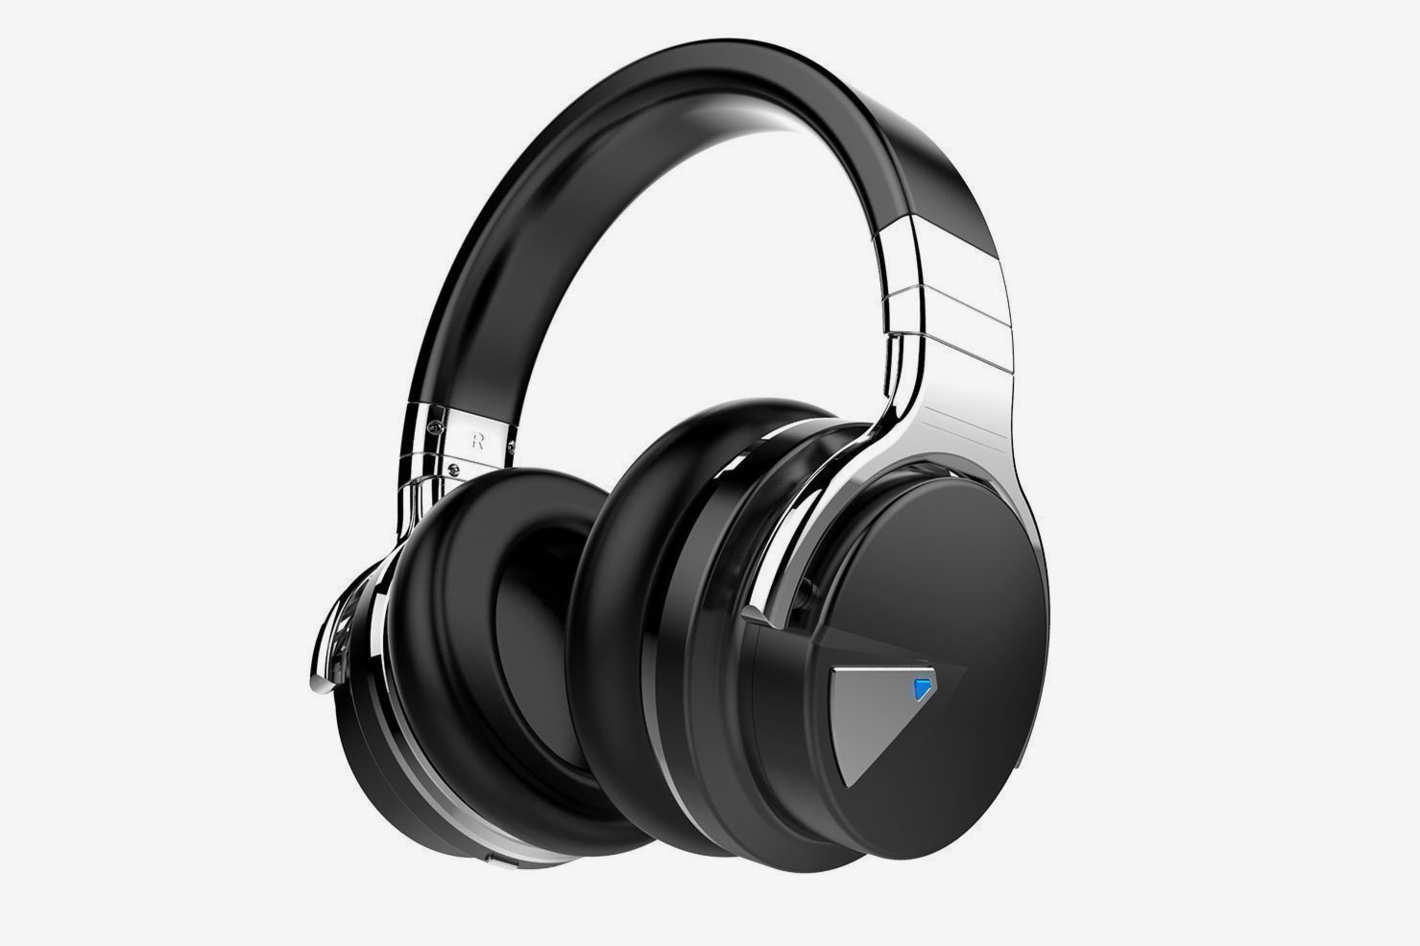 COWIN E7 Active Noise-Canceling Bluetooth Headphones